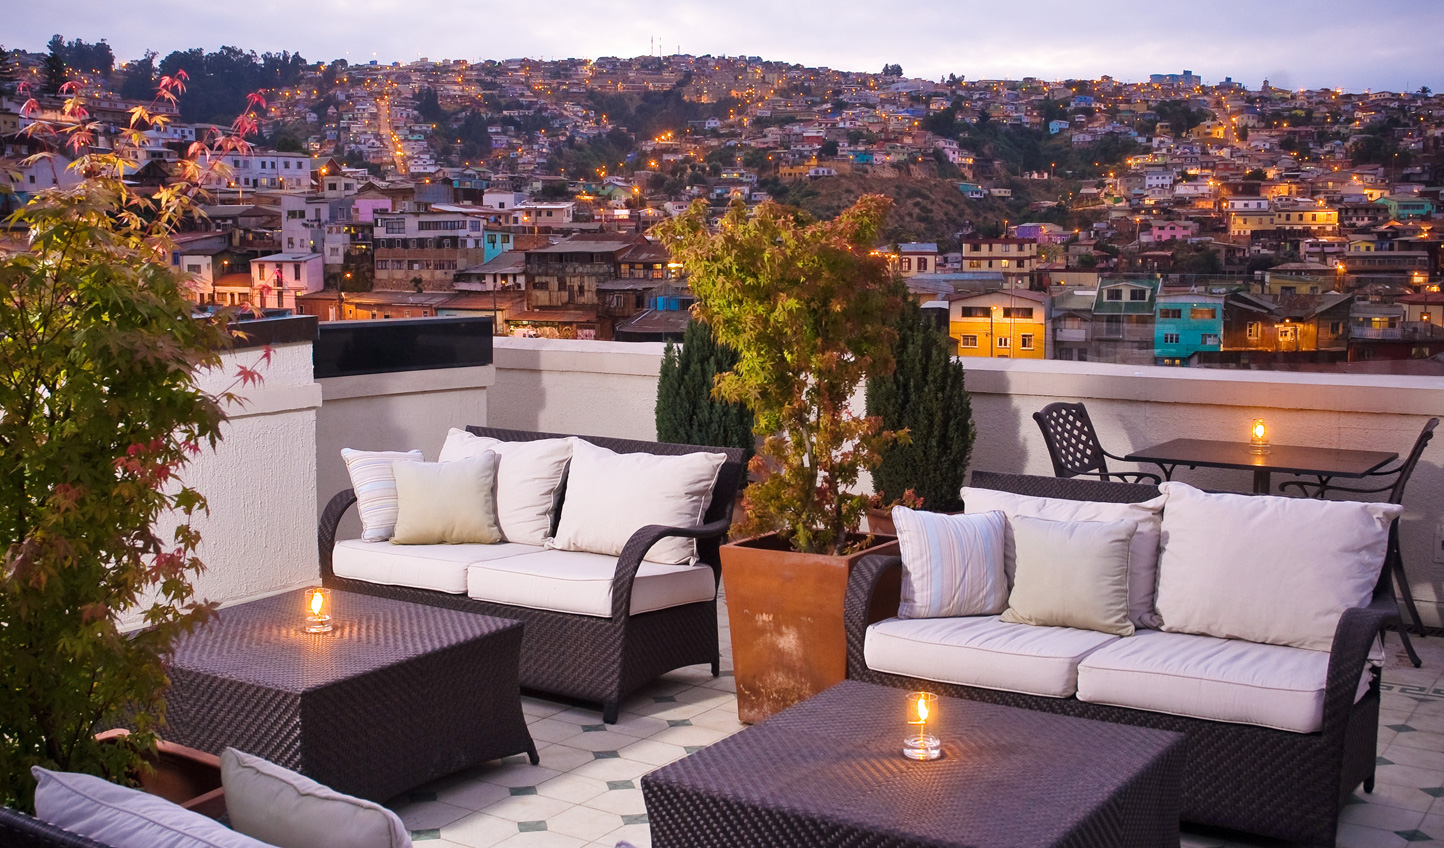 See Valparaiso in style from Casa Higueras's stylish rooftop